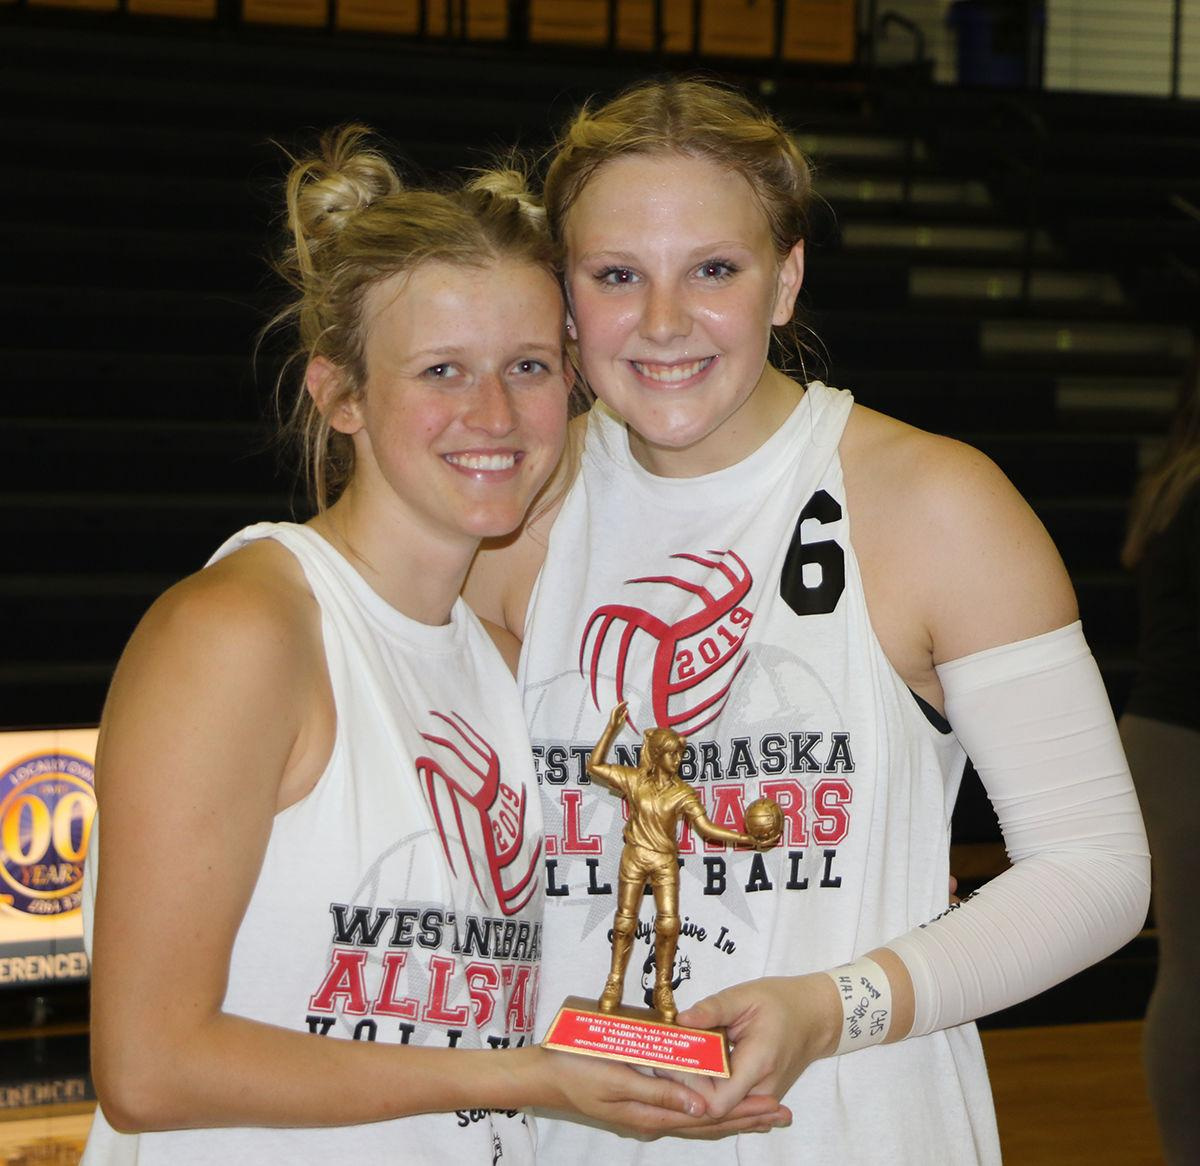 Photos: West Nebraska All-Star Volleyball Match 2019